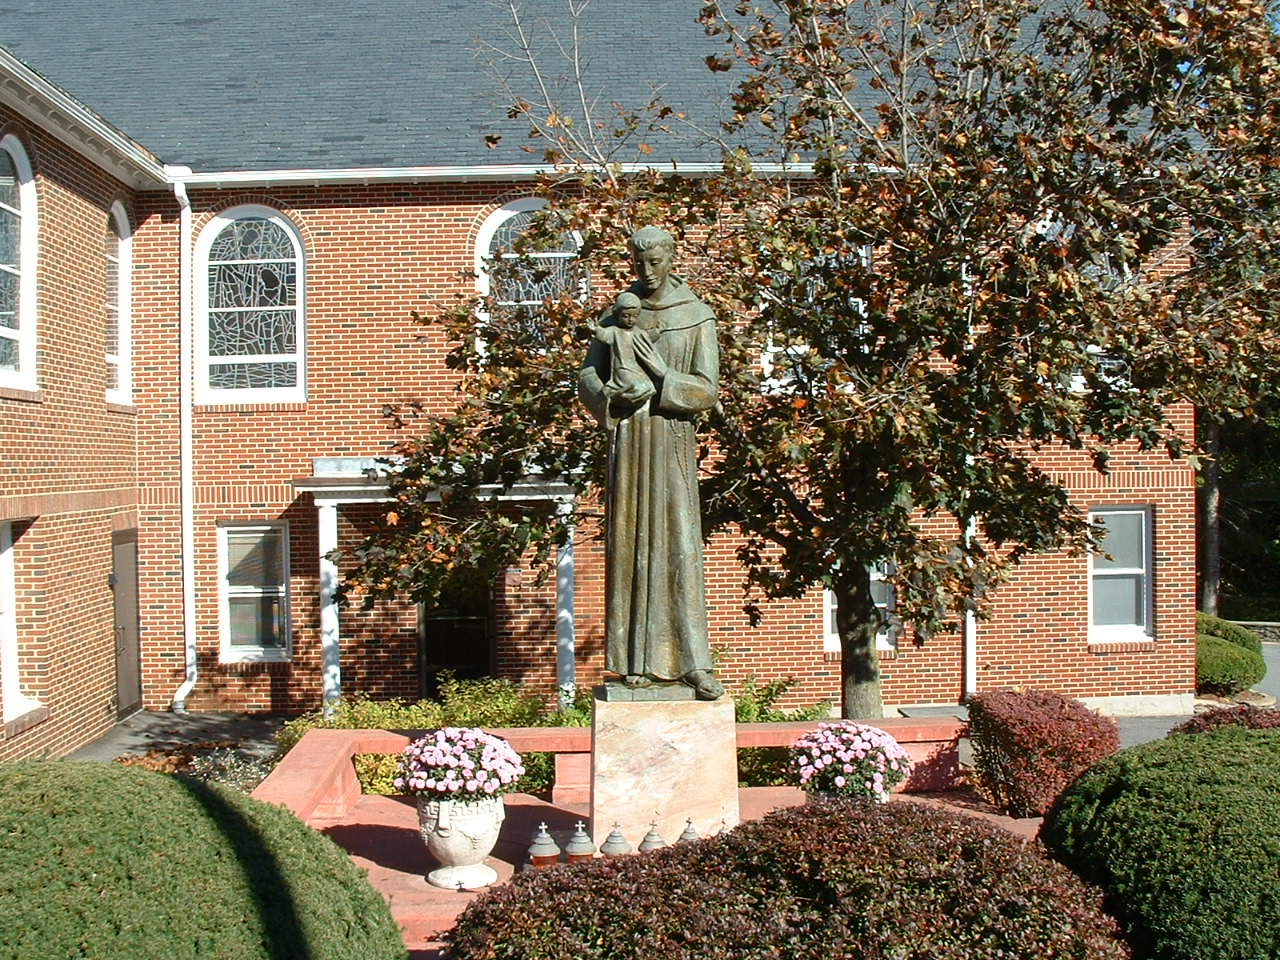 St. Anthony of Padua: Welcome to St. Anthony of Padua Church